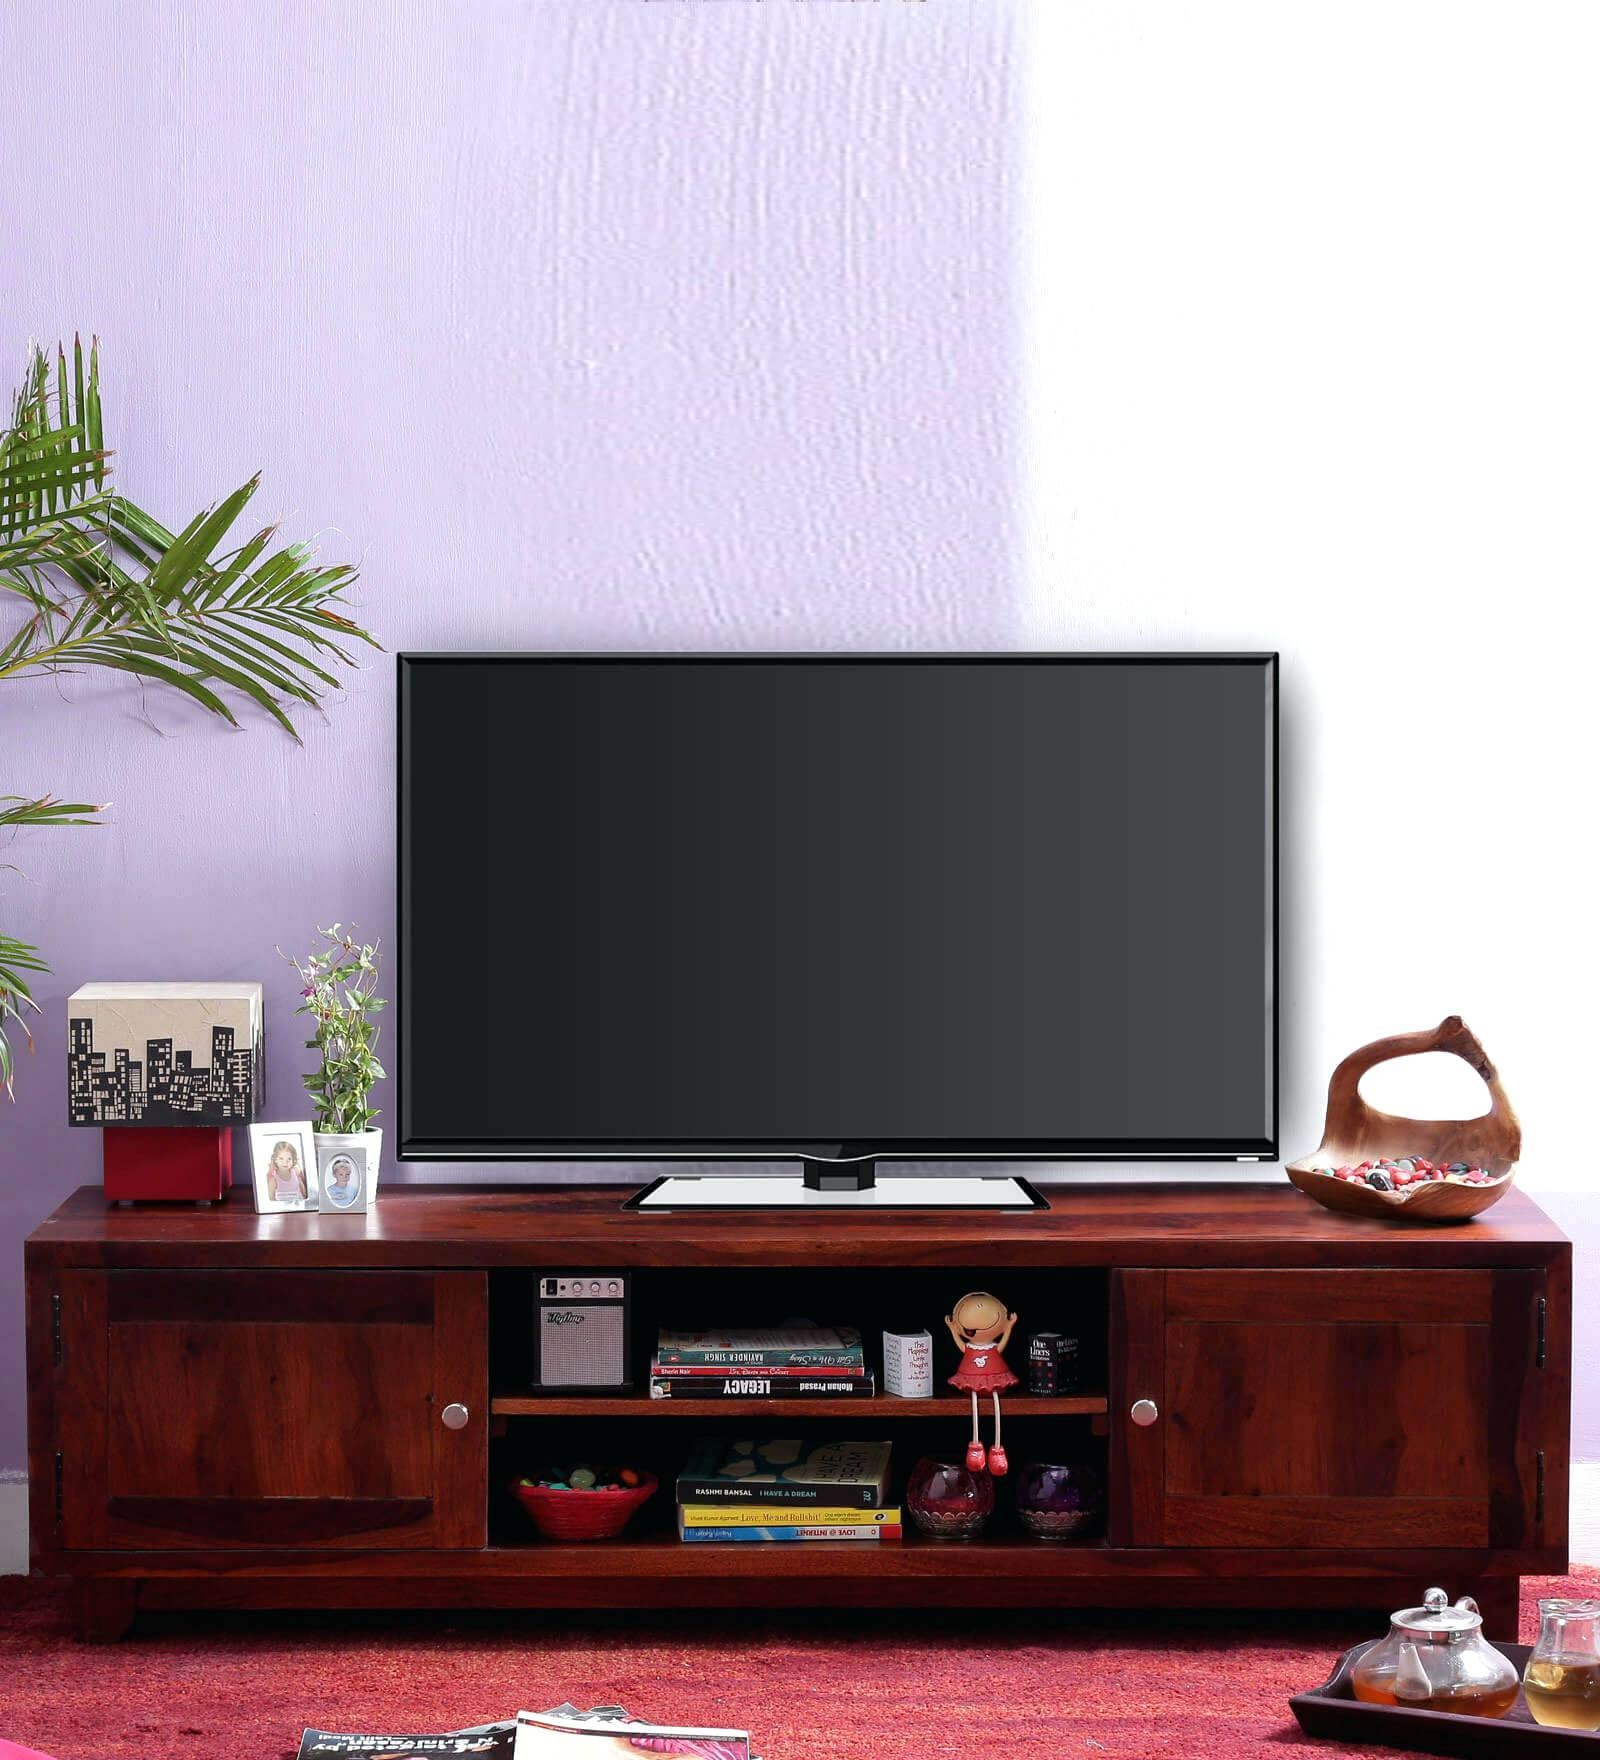 Tv Stand : Furniture Design 60 Cozy Dark Oak Tv Unit Sj027 Dark in Honey Oak Tv Stands (Image 10 of 15)